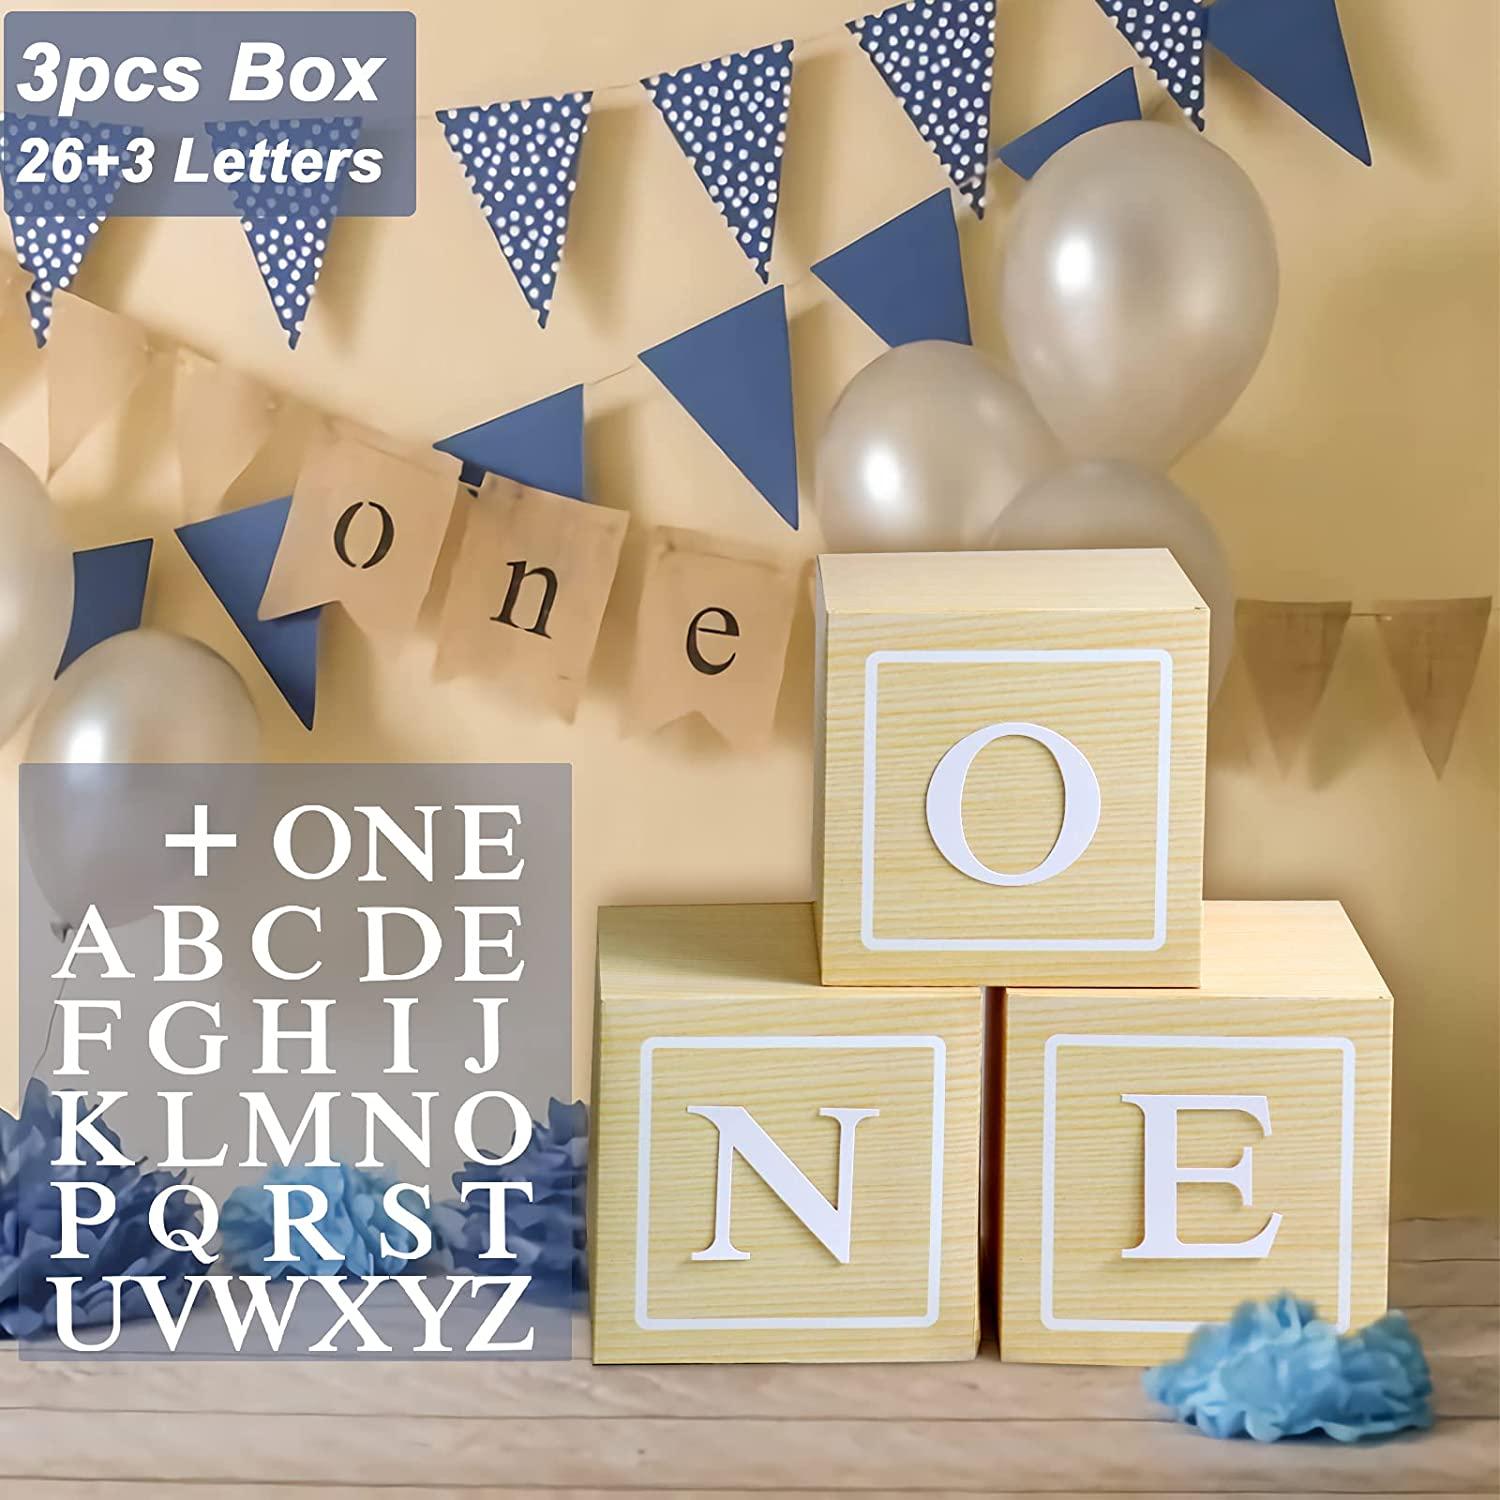 1st Birthday Decorations - 3Pcs ONE Boxes Decor with A - Z Letters,First Birthday Wood Grain Paper Party Boxes for Baby Shower,DIY ONE Blocks for Boy Girl 1 Year Old Birthday Backdrop Favor